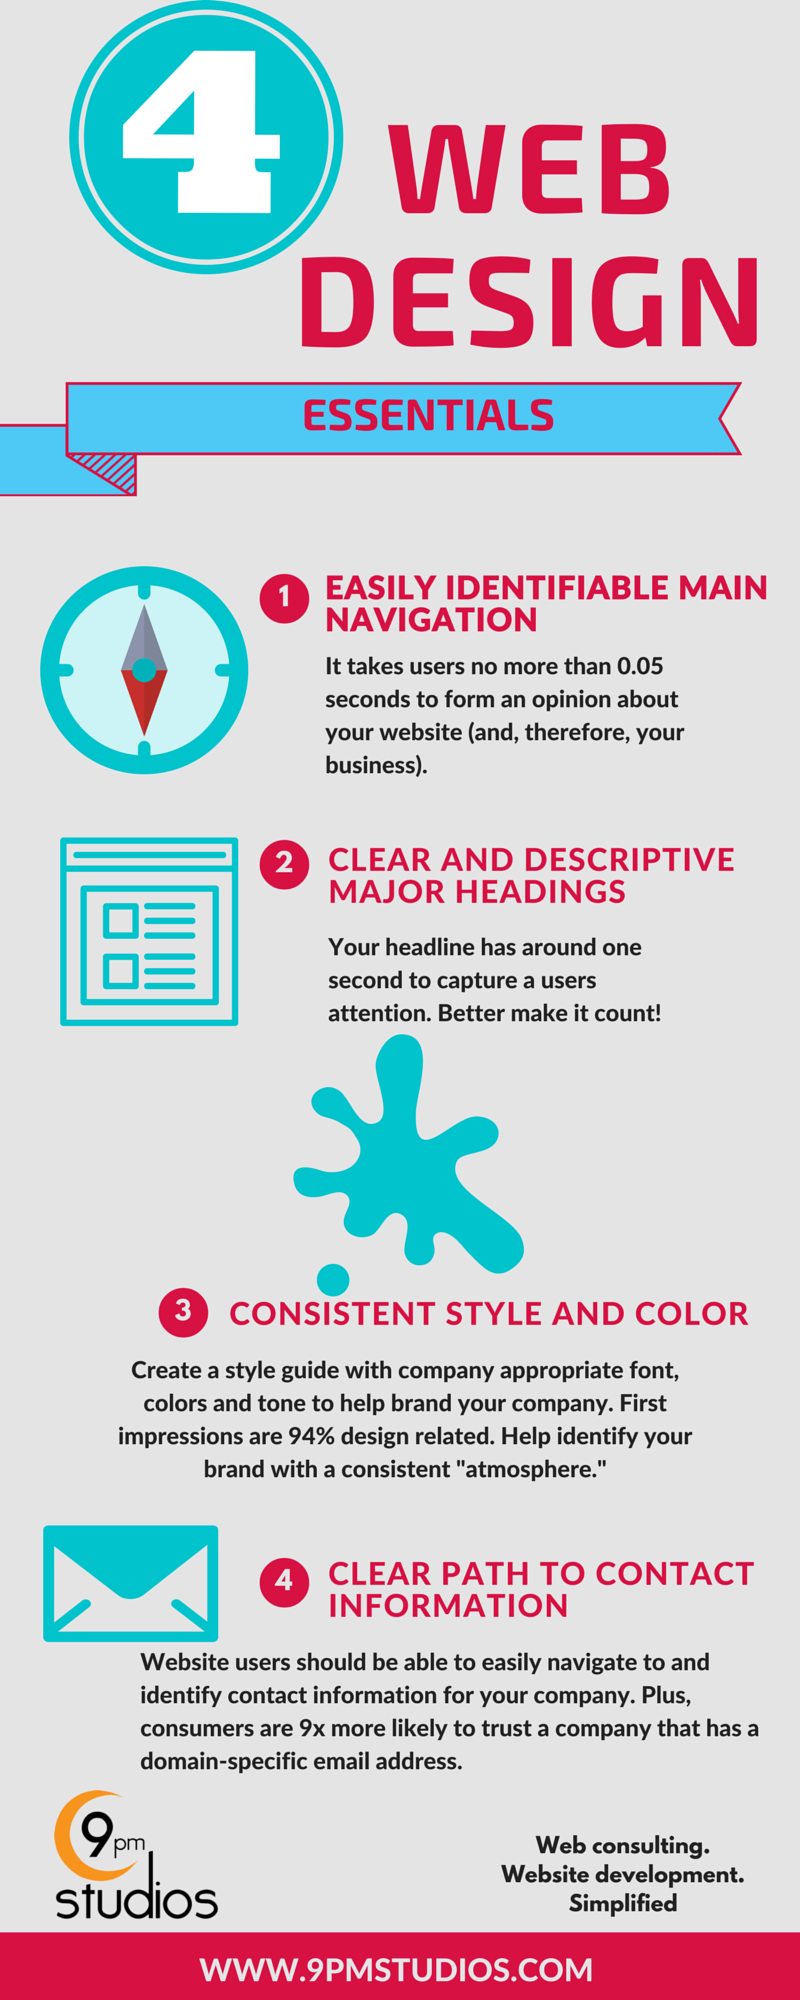 Web design tips infographic